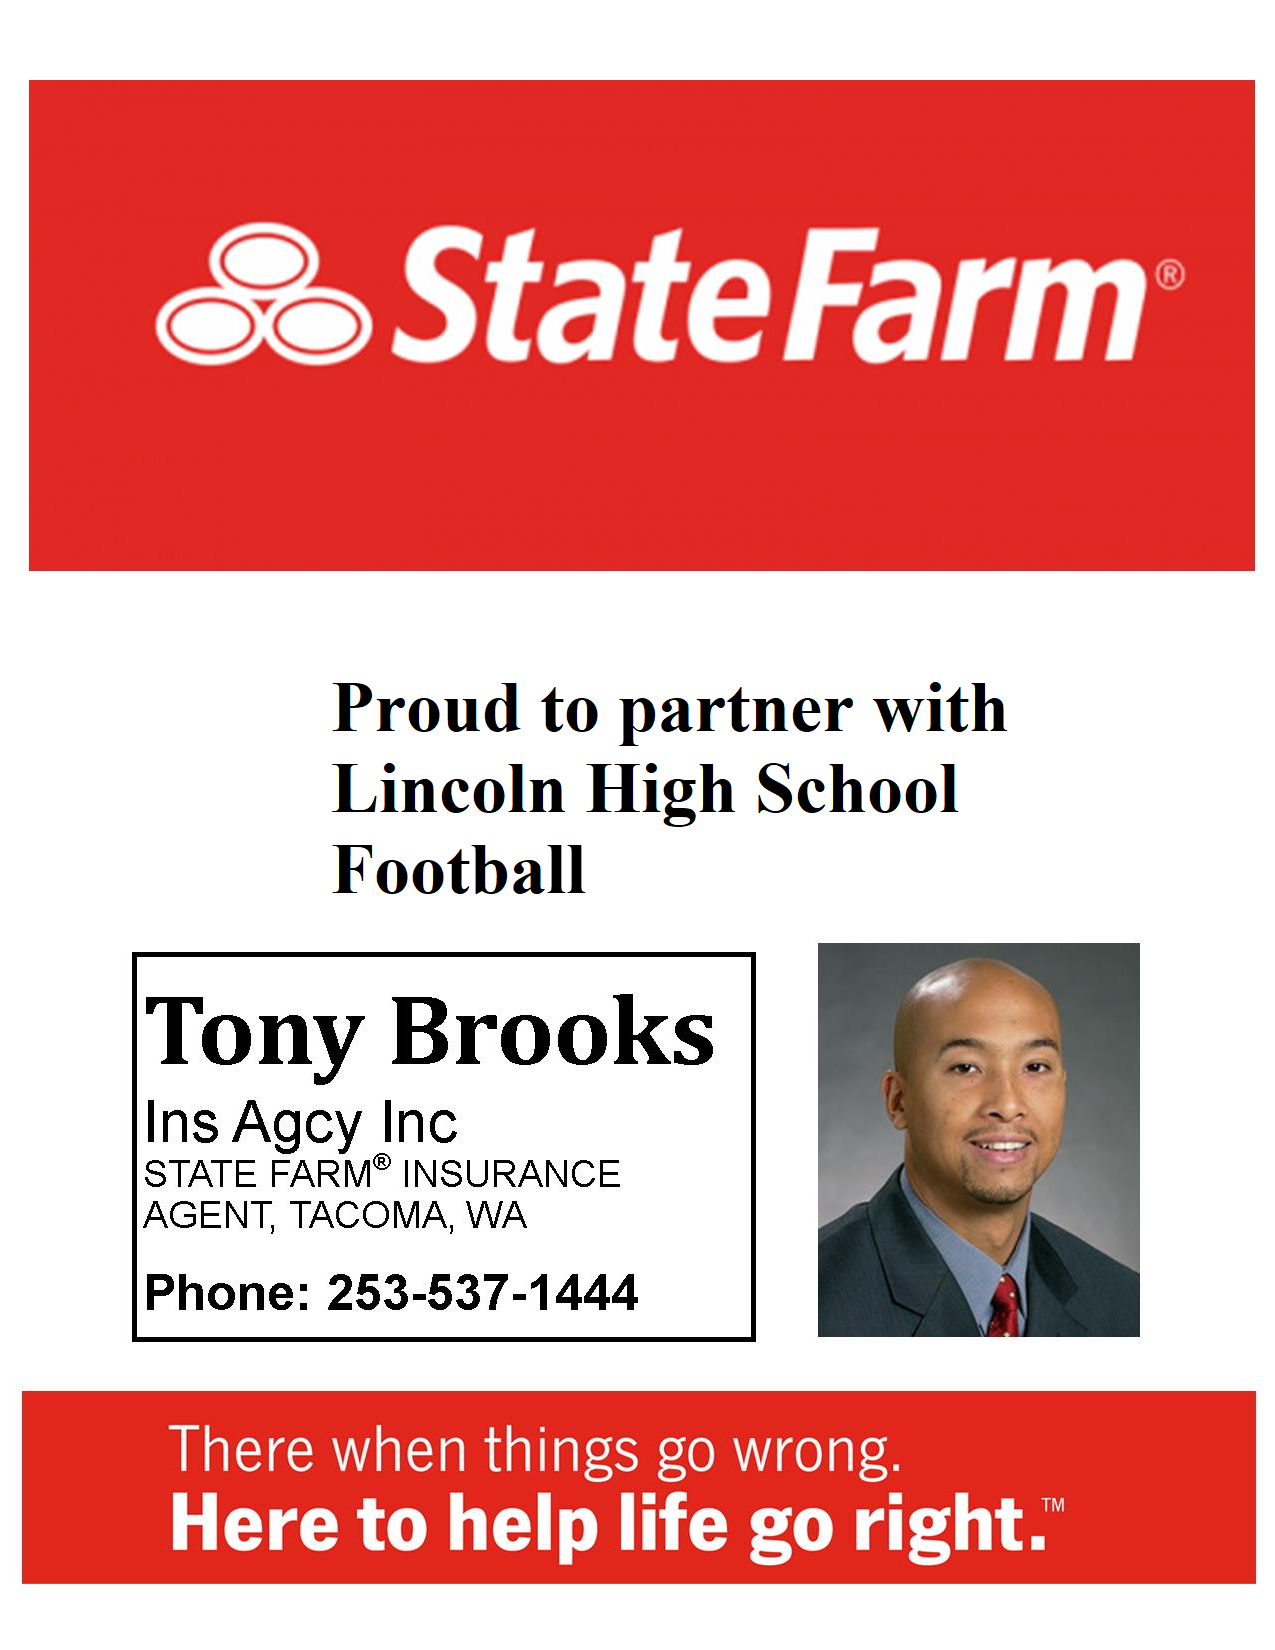 Tony Brooks Insurance Agency Inc.